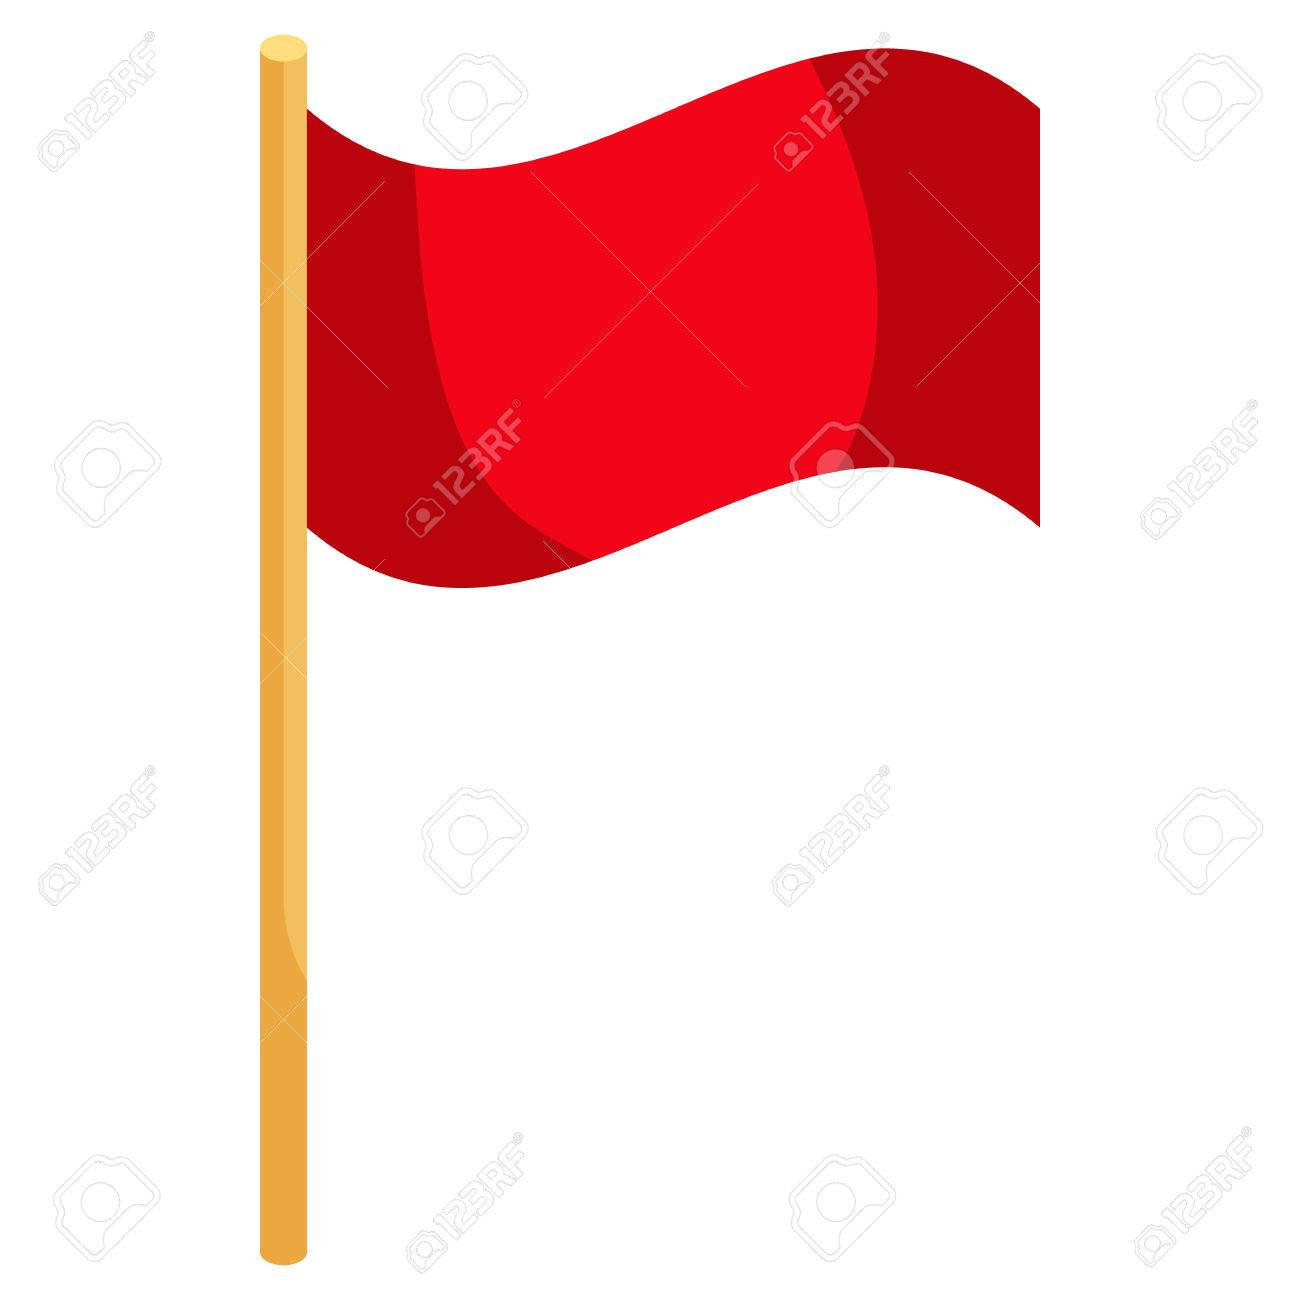 Red soccer corner flag icon in cartoon style on a white background